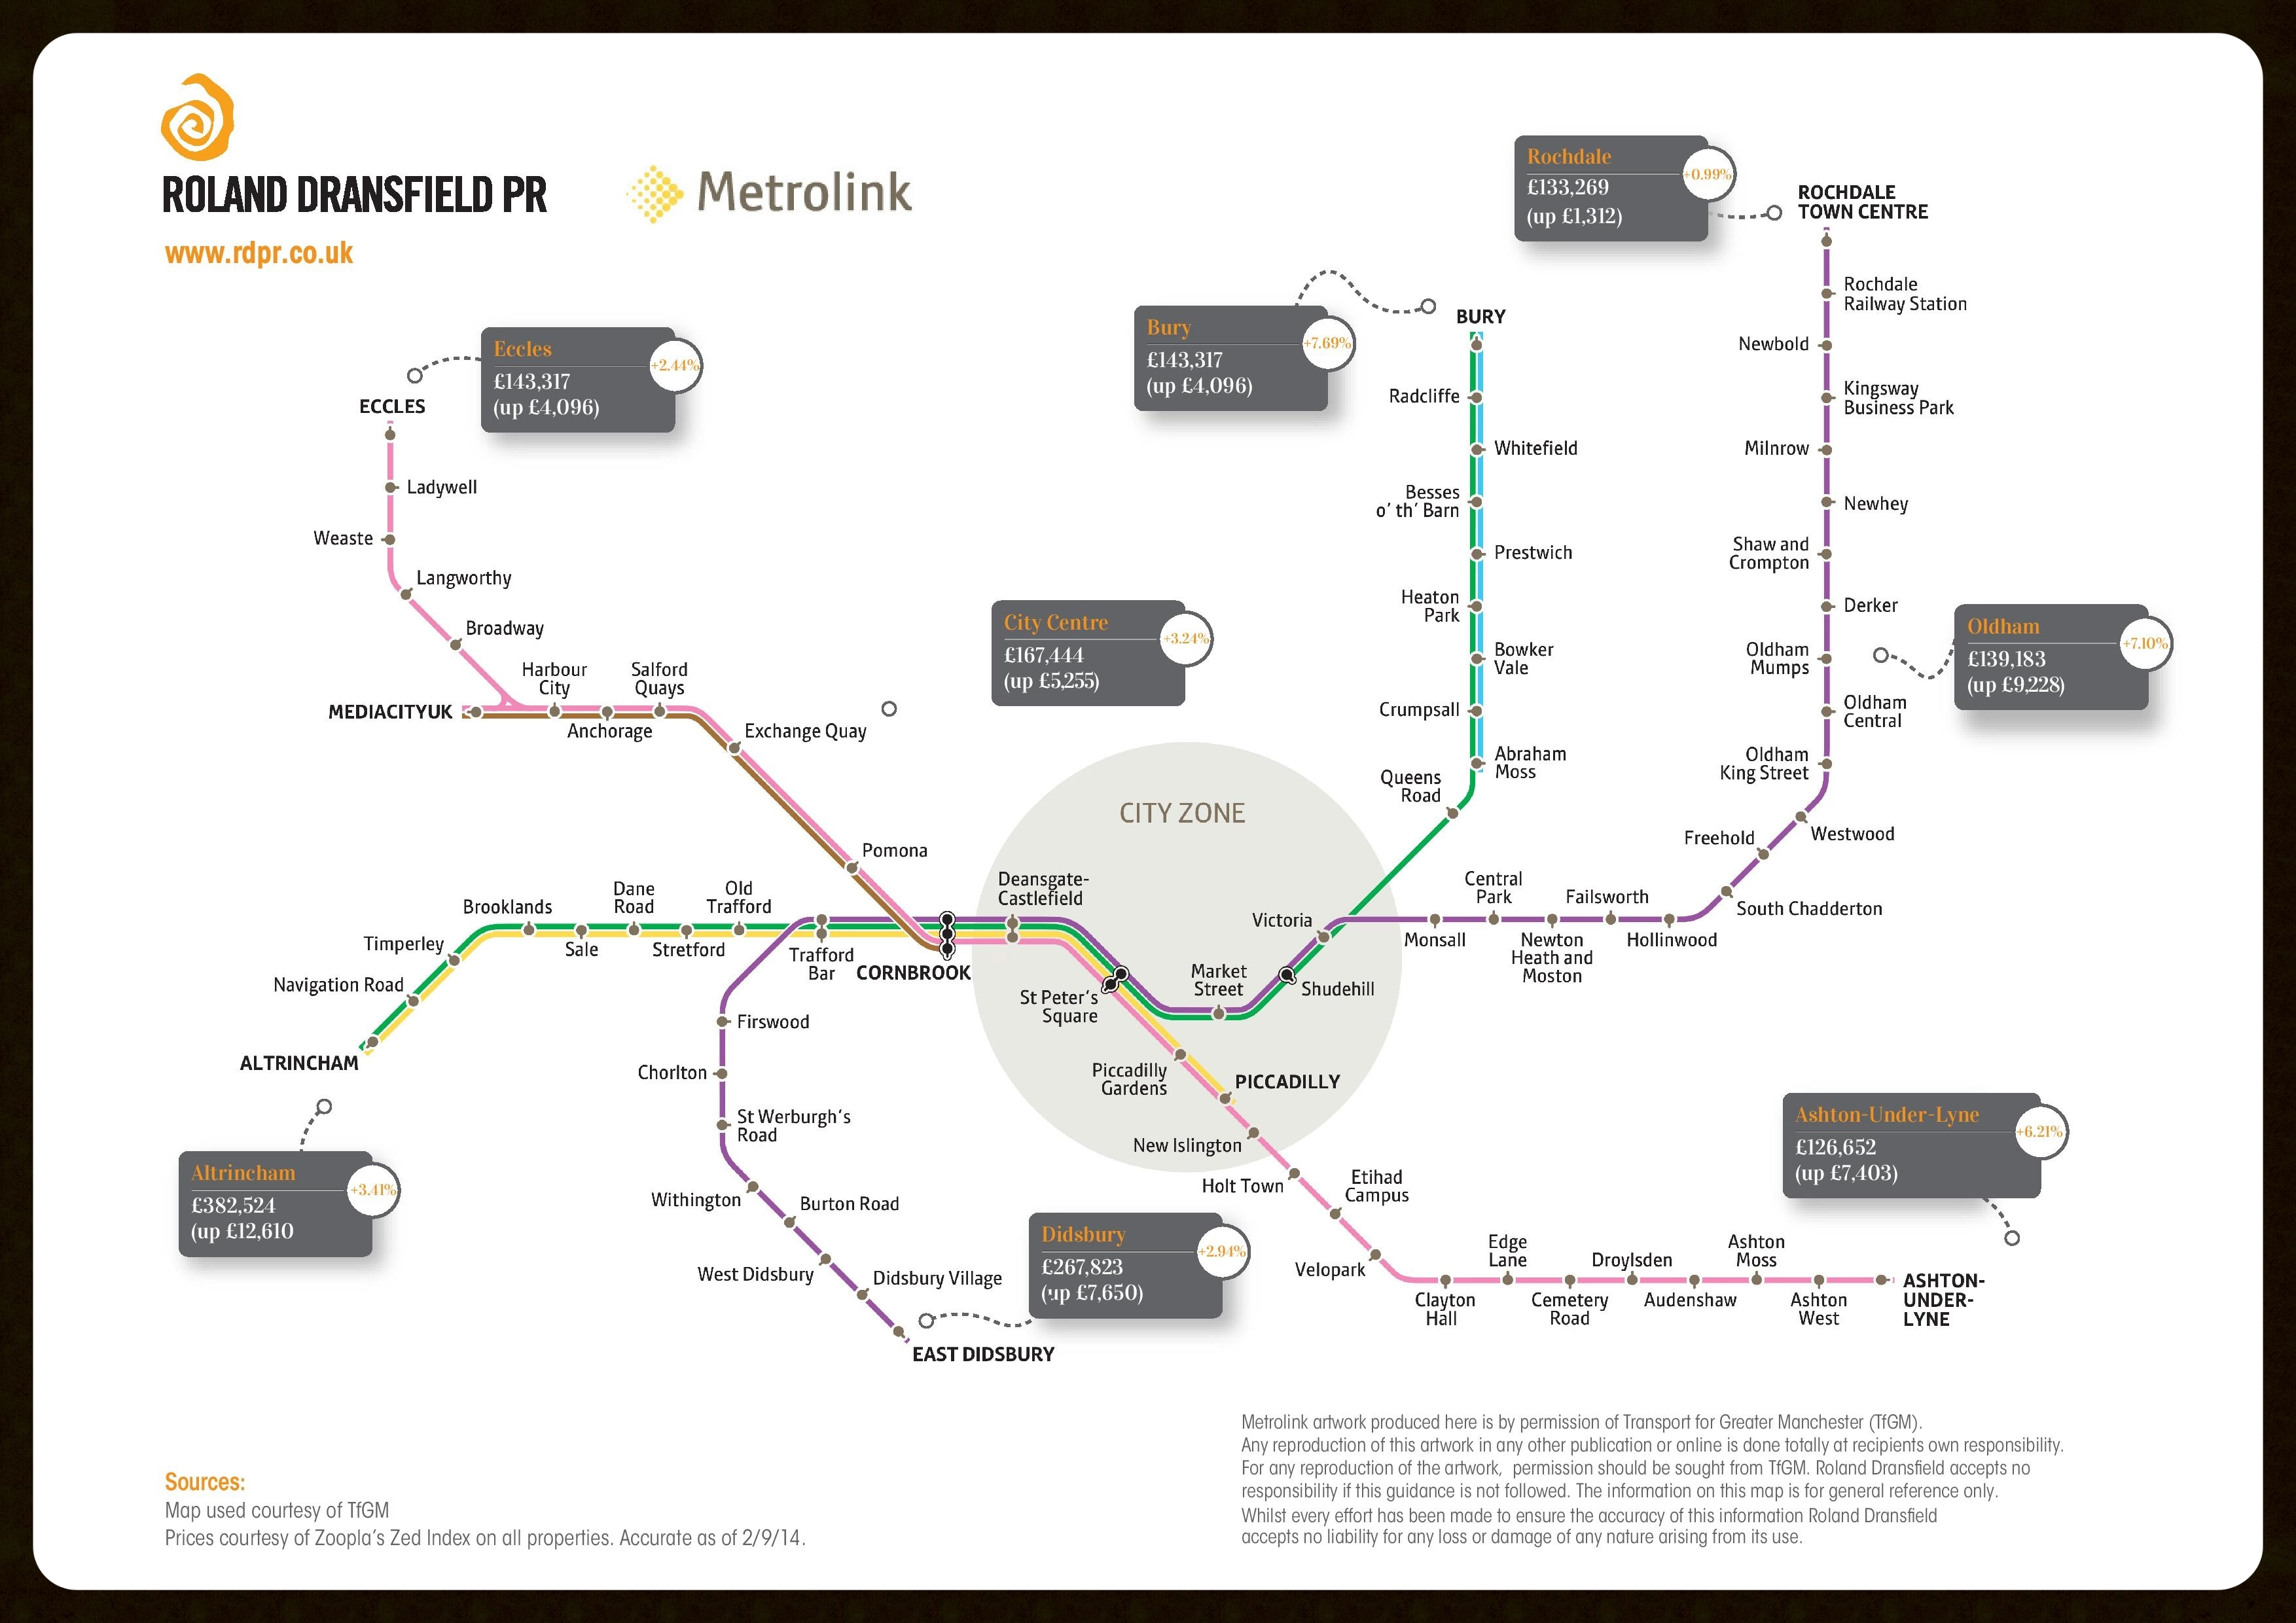 RDPR_Property_Price_Metrolink_Map_JPEG-193091-edited